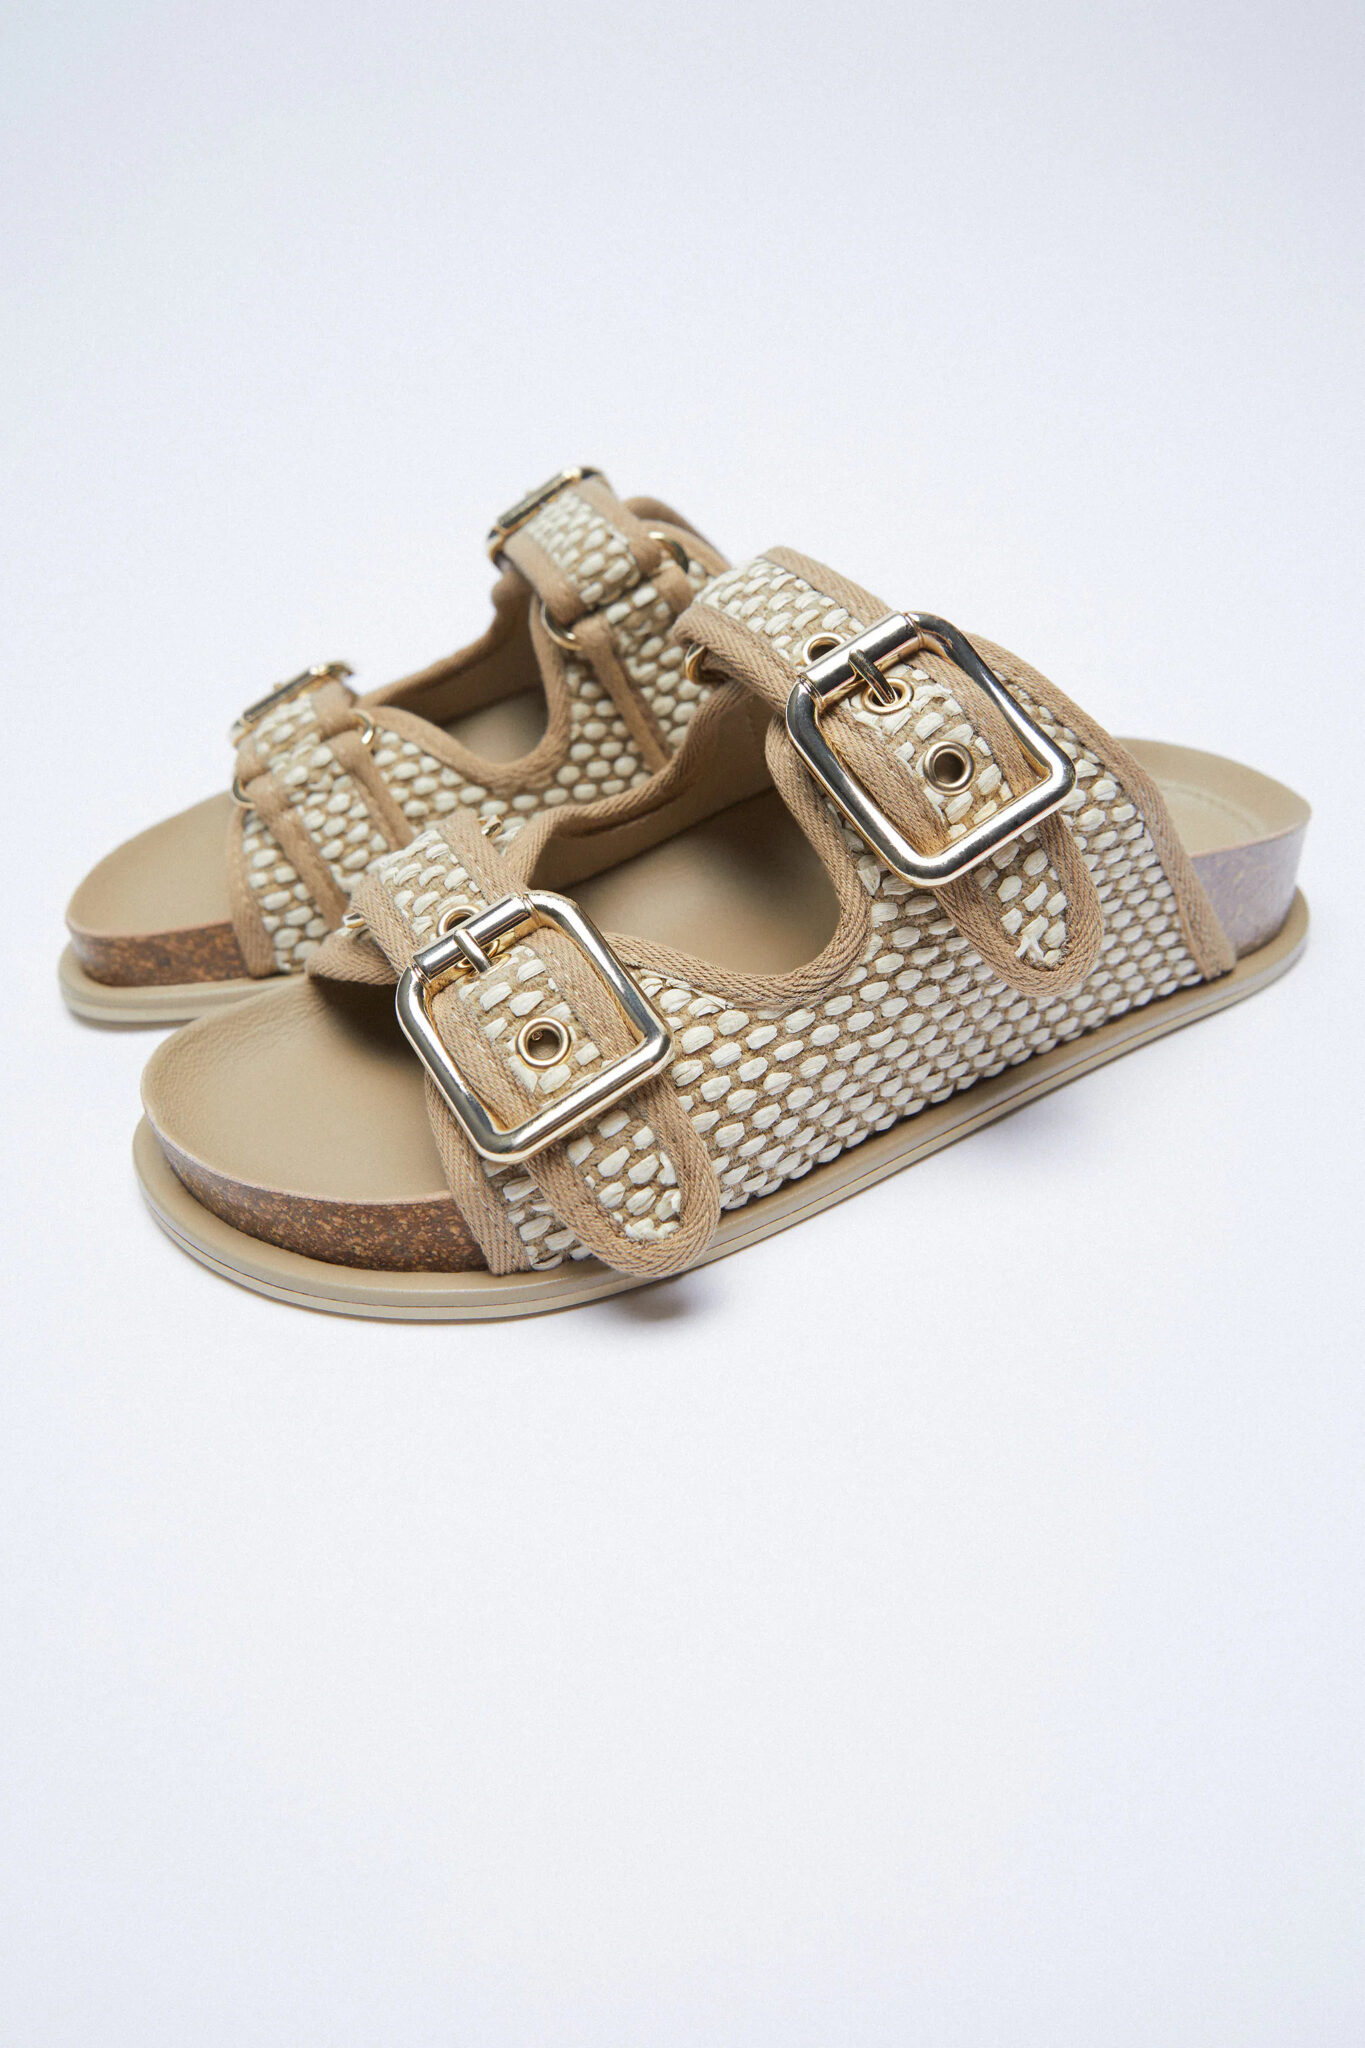 Flat-Fabric-Sandals-with-Buckles_-Zara_-£55.99